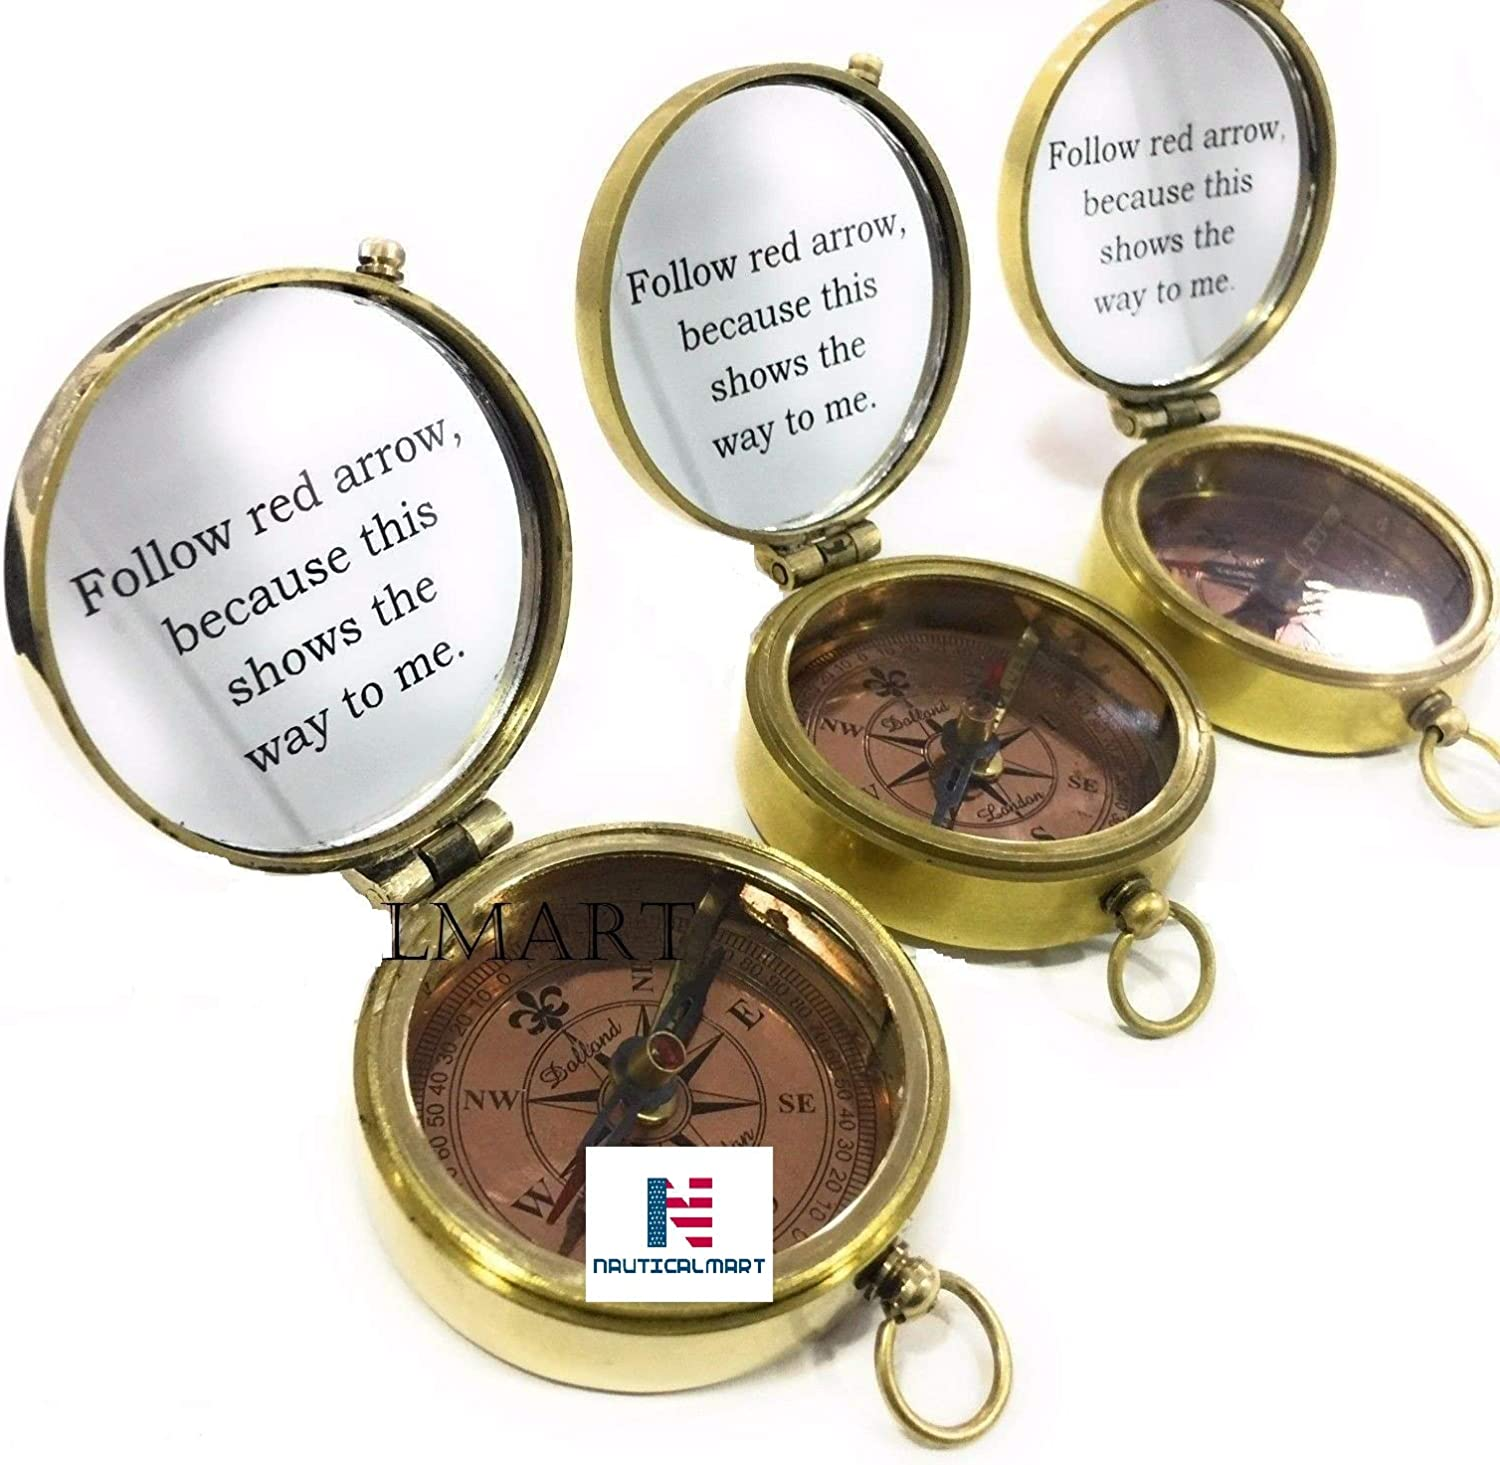 NauticalMart Brass Compass Max 48% OFF Engraved to You Show Marin Way High order The